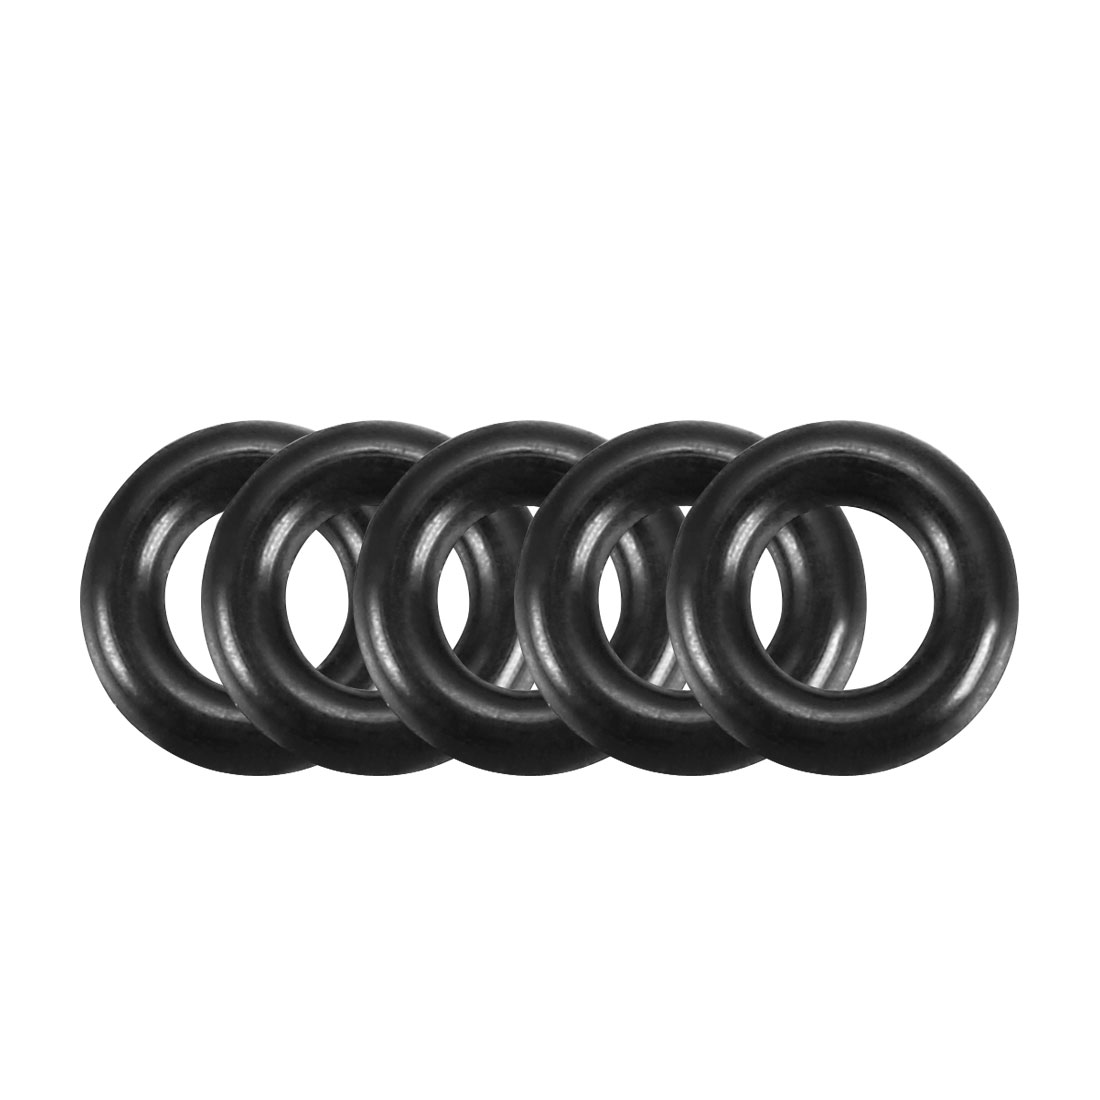 200Pcs Black Universal O-Ring 5mm x 1.2mm BUNA-N Material Oil Seal Washers Grommets